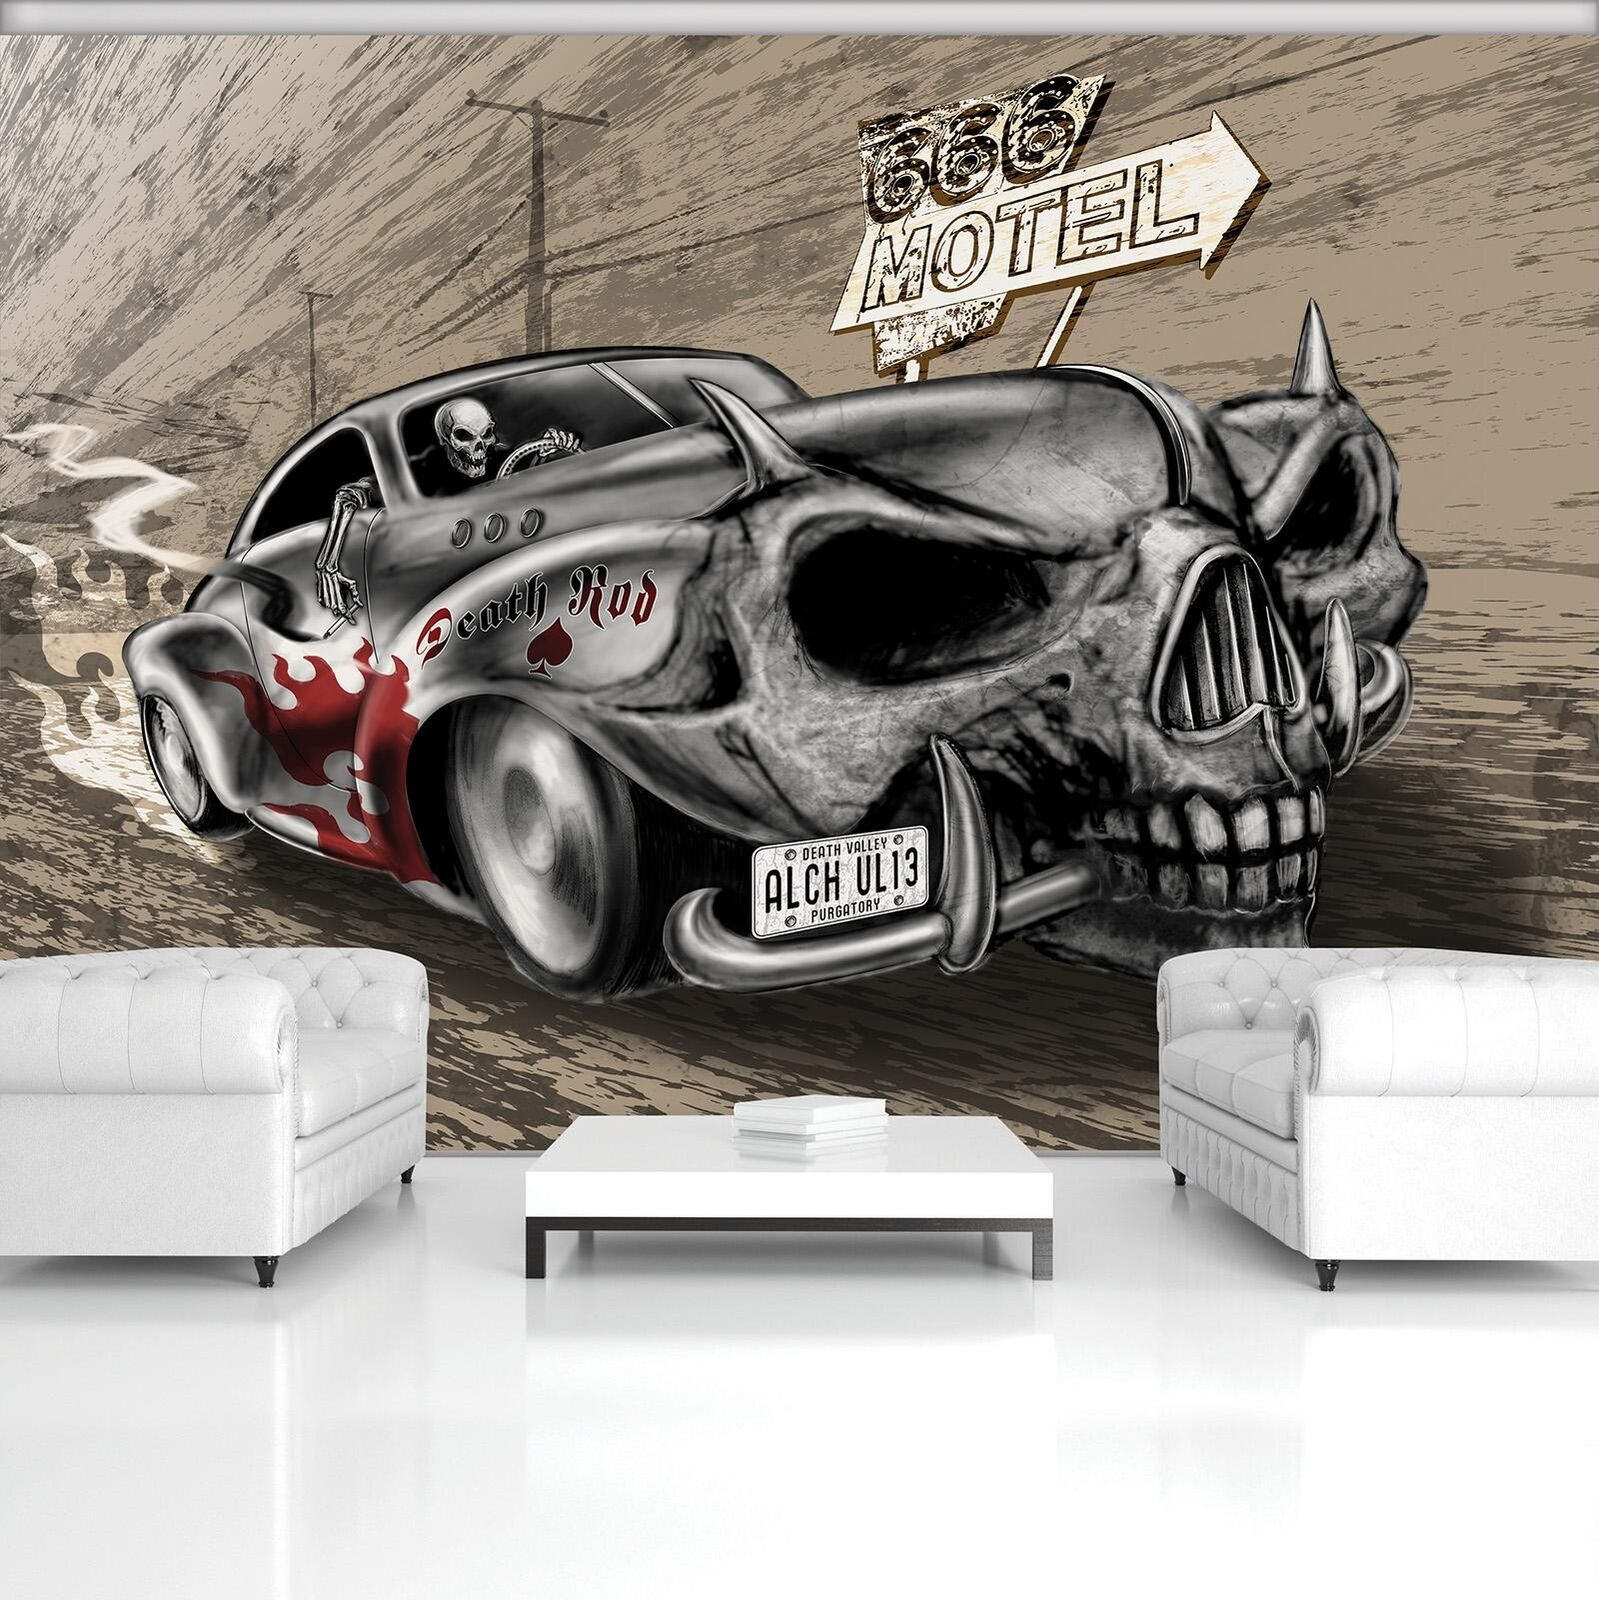 Alchemy Alchemy Photo Wallpaper Mural Non-woven 20252_VE Alchemy Death Rod Motel